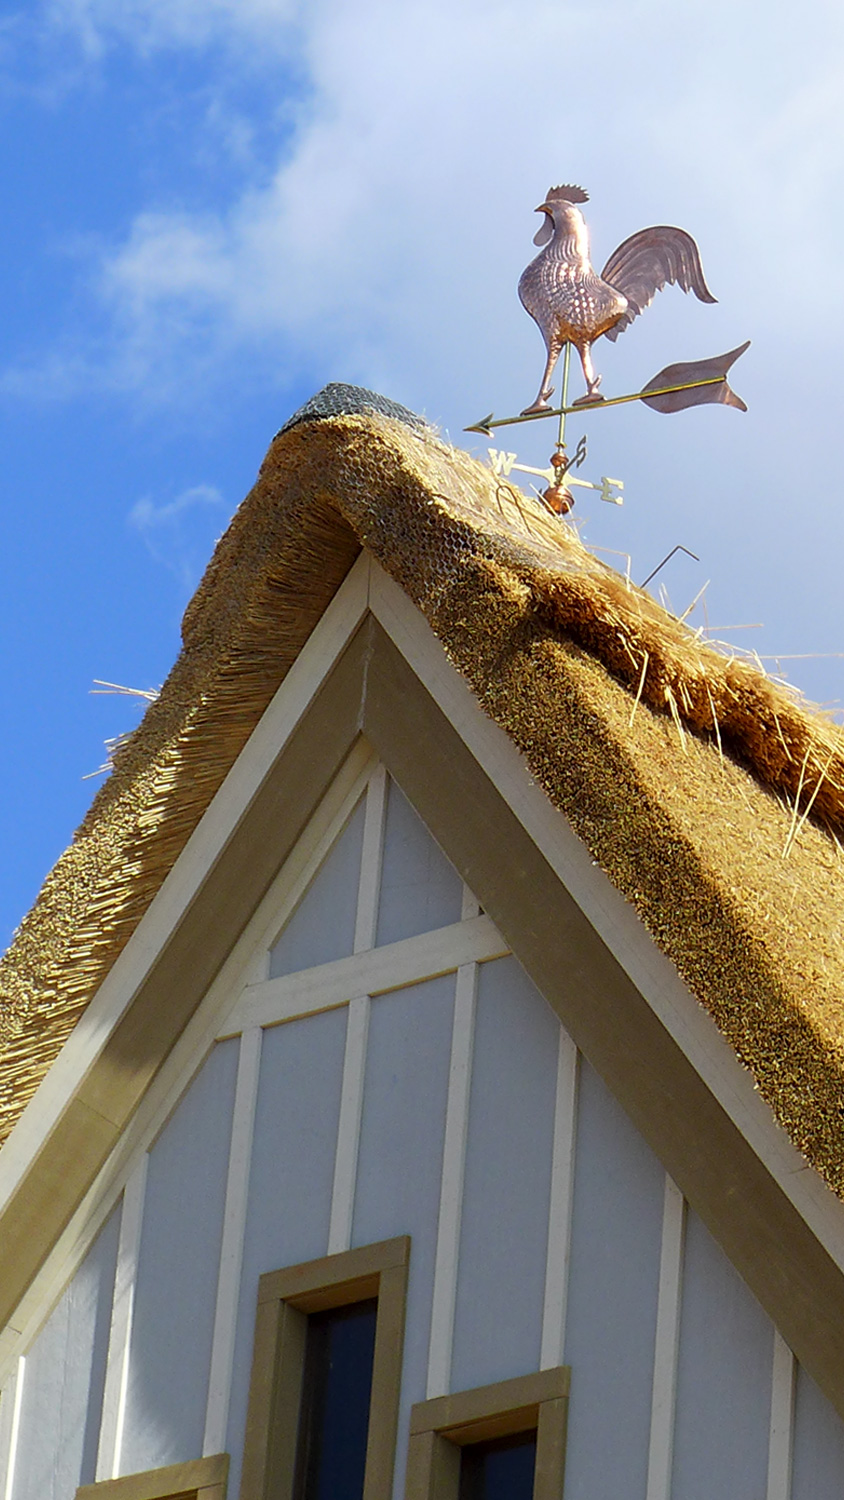 thatched_roof.jpg